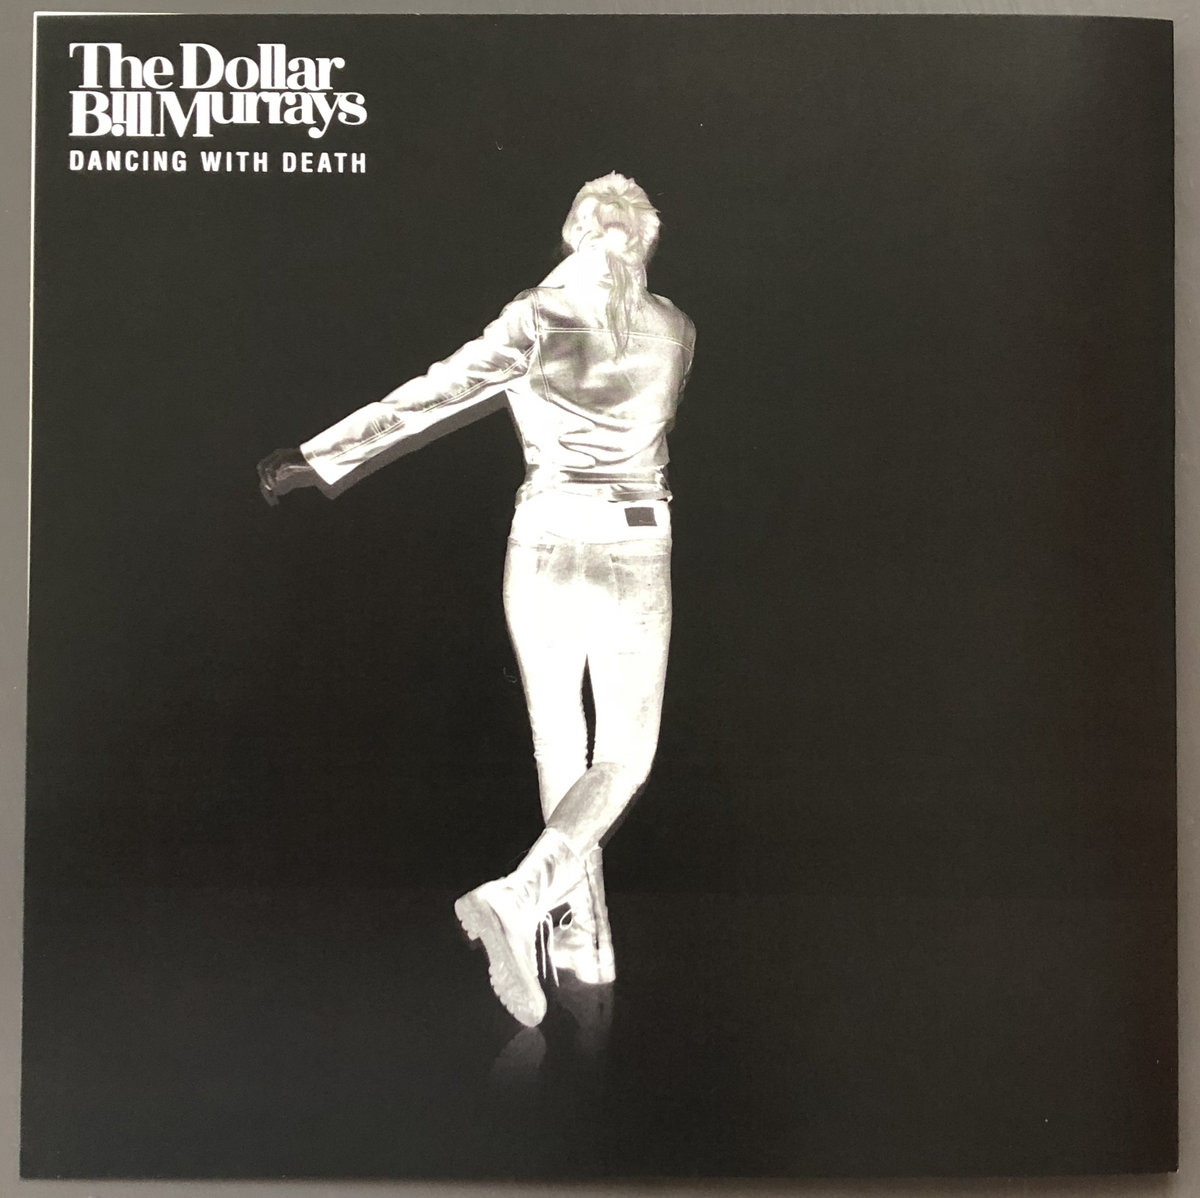 The Dollar Bill Murrays - 'The Shape You Take' b/w 'Dancing With Death'